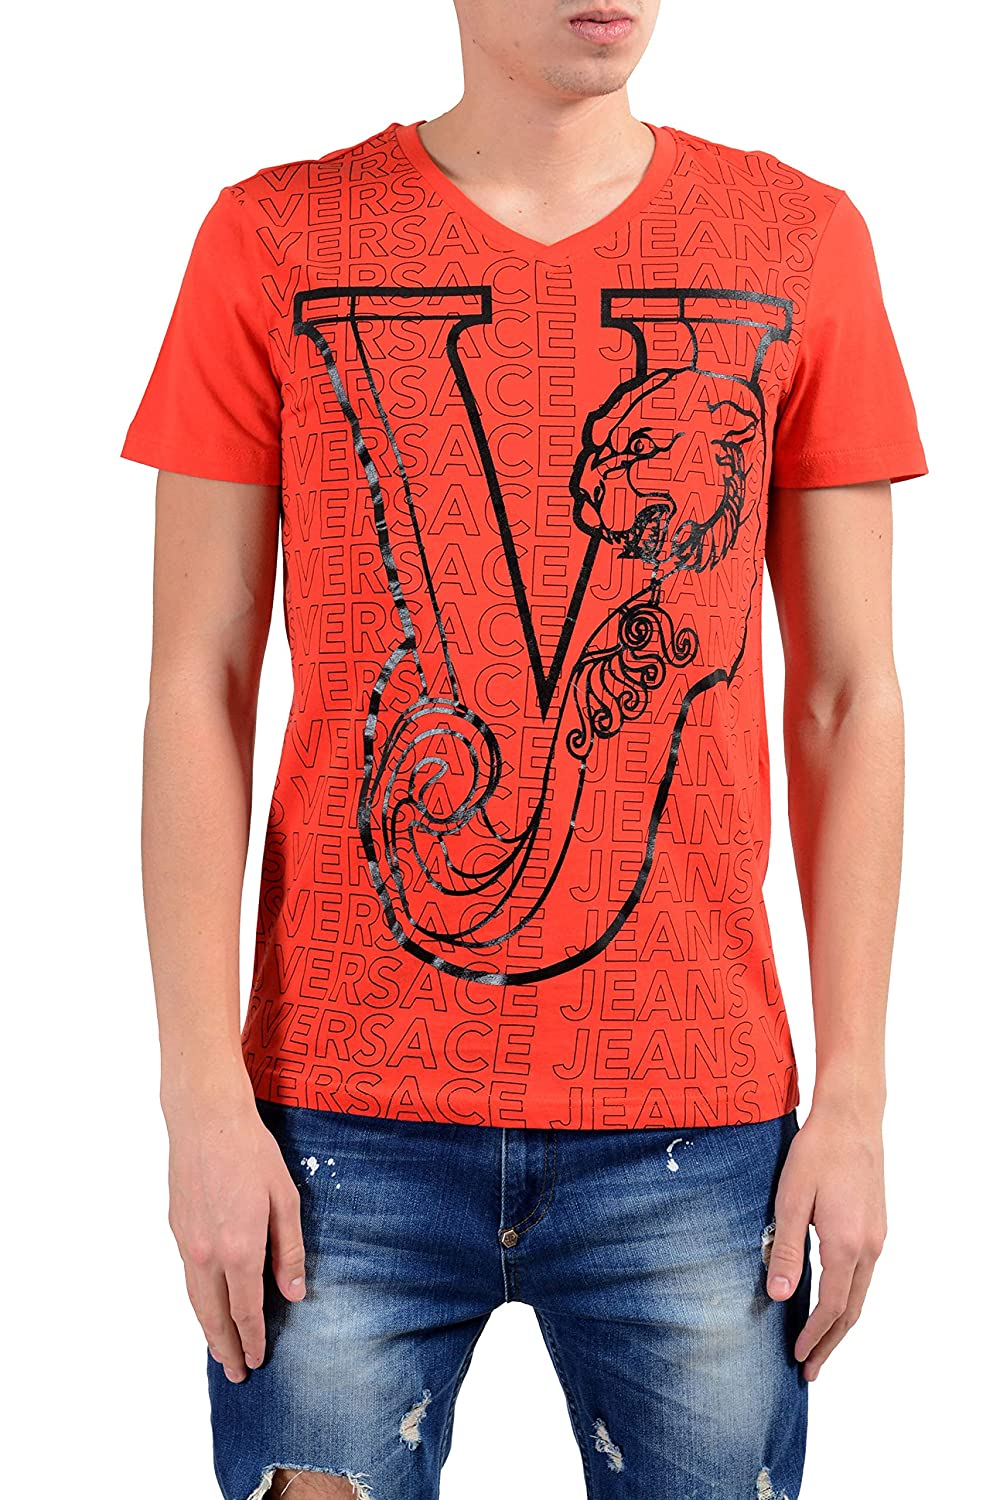 Versace Jeans Mens Orange Graphic Short Sleeve V-Neck T-Shirt Sz US S IT 48